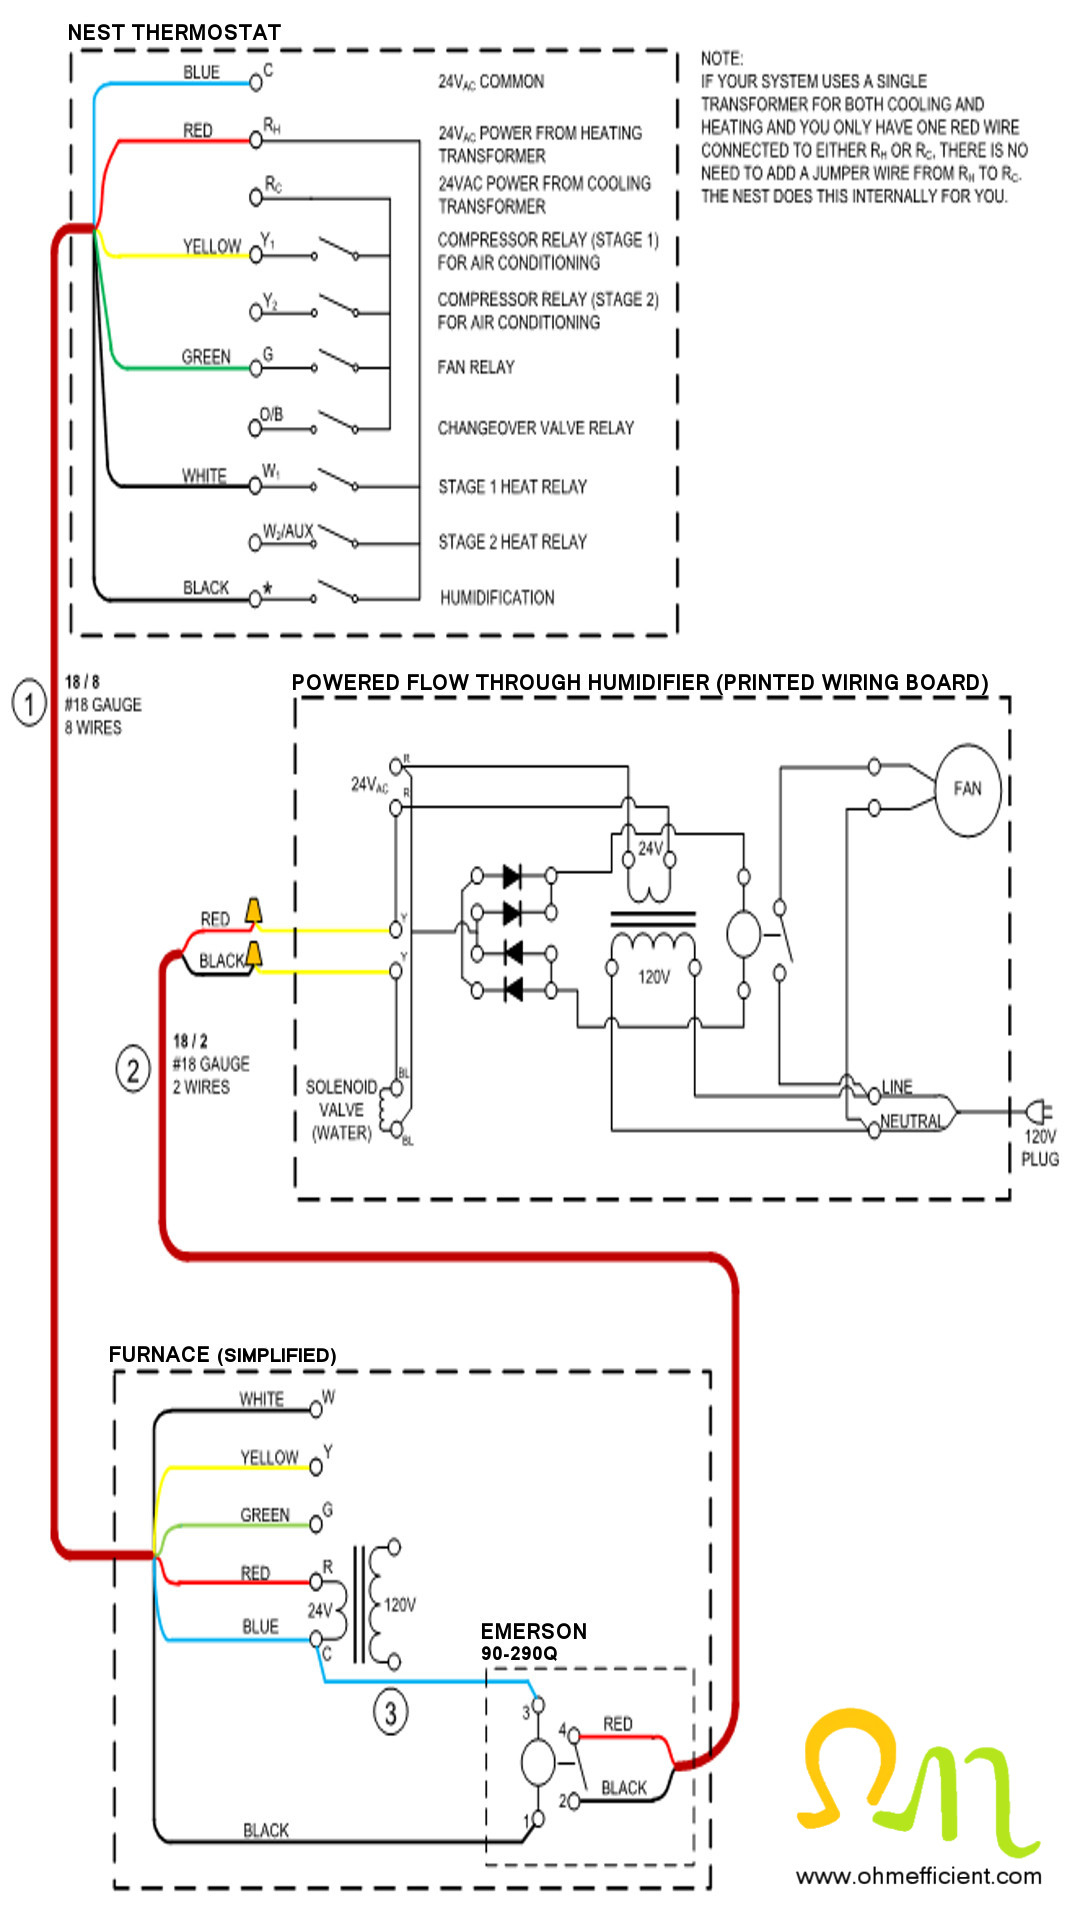 How To Connect & Setup A Nest Thermostat To Function As A Humidistat - Nest Install Without Wiring Diagram